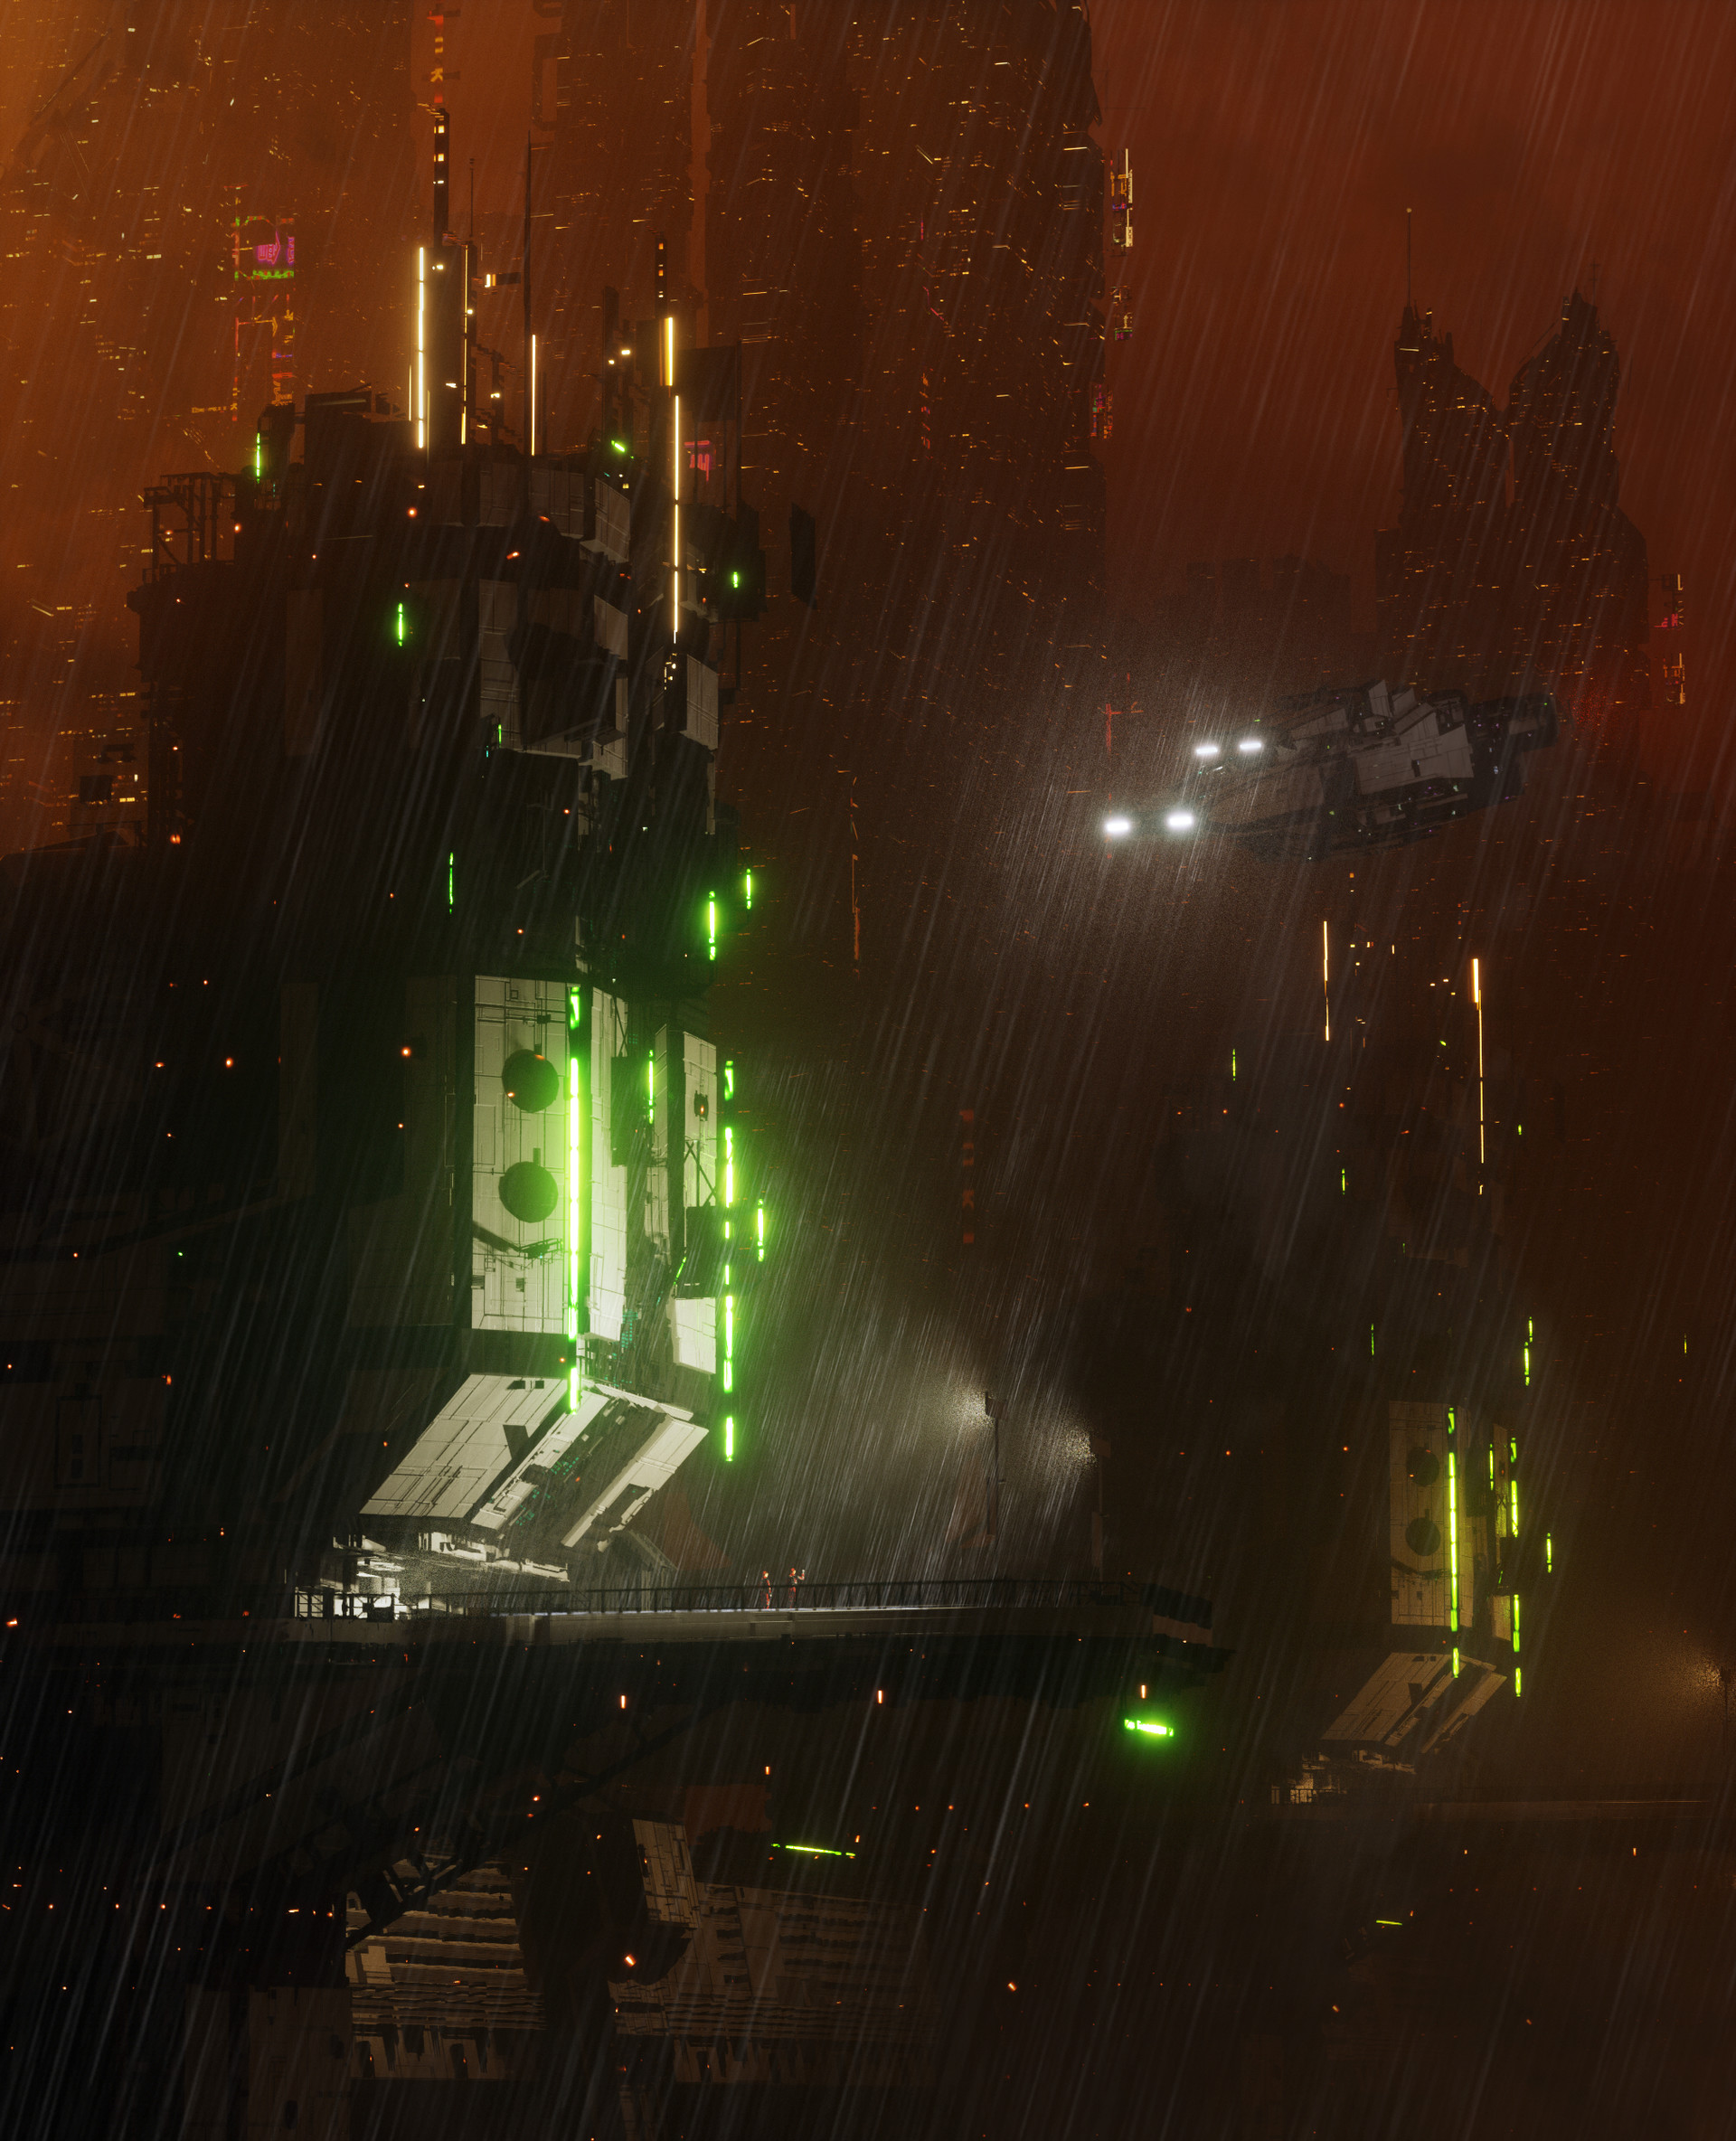 129666 Screensavers and Wallpapers Sci-Fi for phone. Download Art, Rain, Night, Dark, Sci-Fi, Station pictures for free